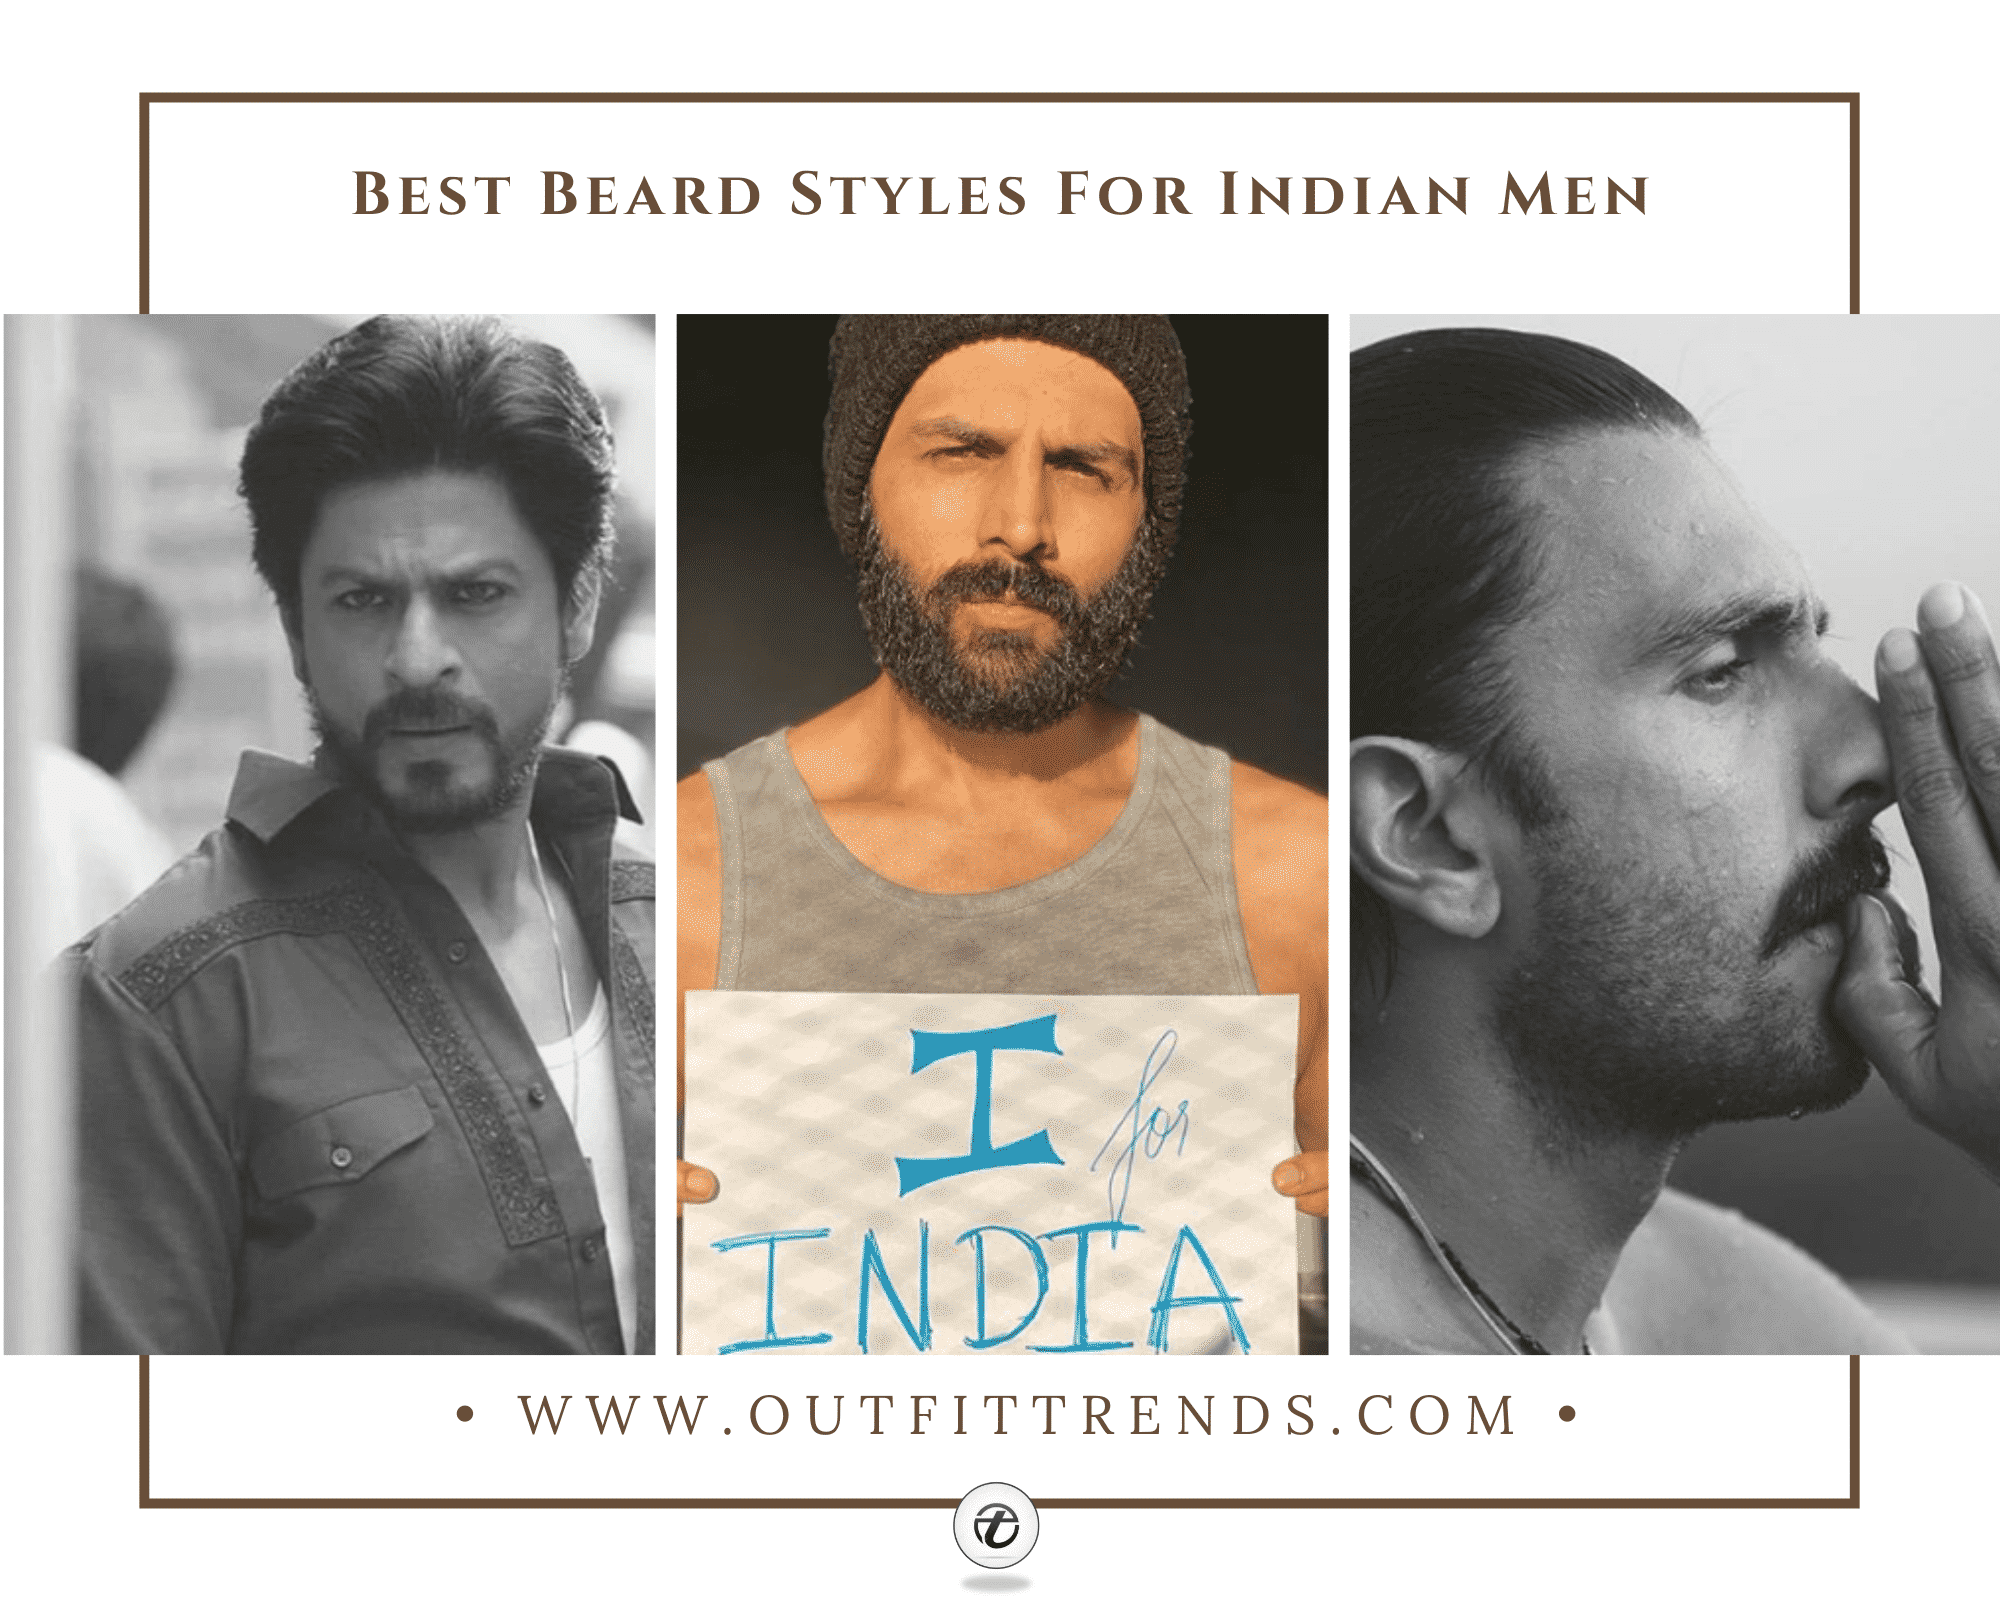 Indian Beard Styles35 New Facial Hair Styles For Indian Men